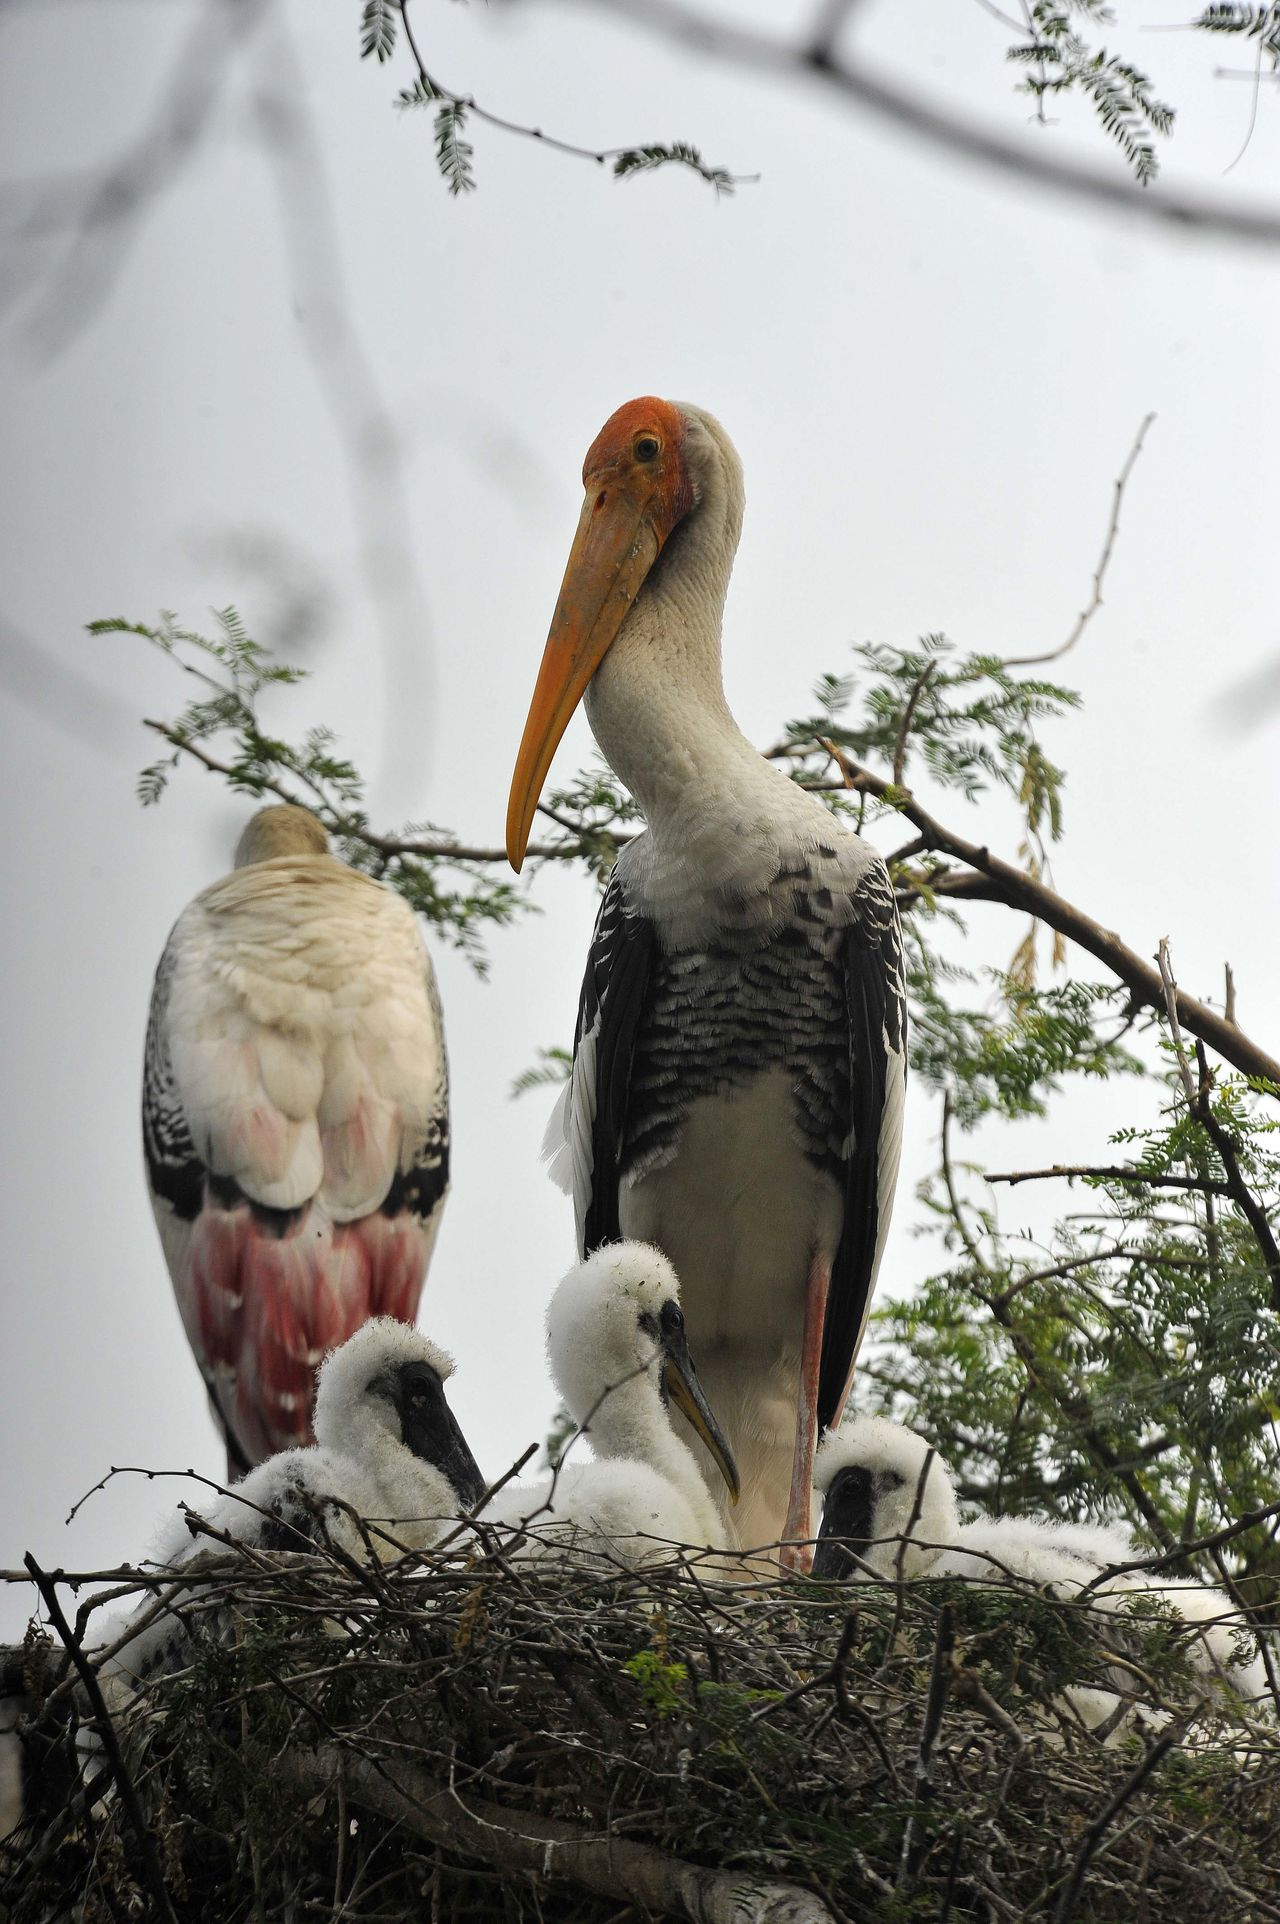 Stork nest with chicks in New Delhi, India. Avian Bill Bird Bird Nest Bird Photography Close-up Day Feathers Focus On Foreground Long Beak Long Neck  Nature Nest No People Outdoors Portrait Sky Stork Chicks Stork Nest Storks Wildlife & Nature